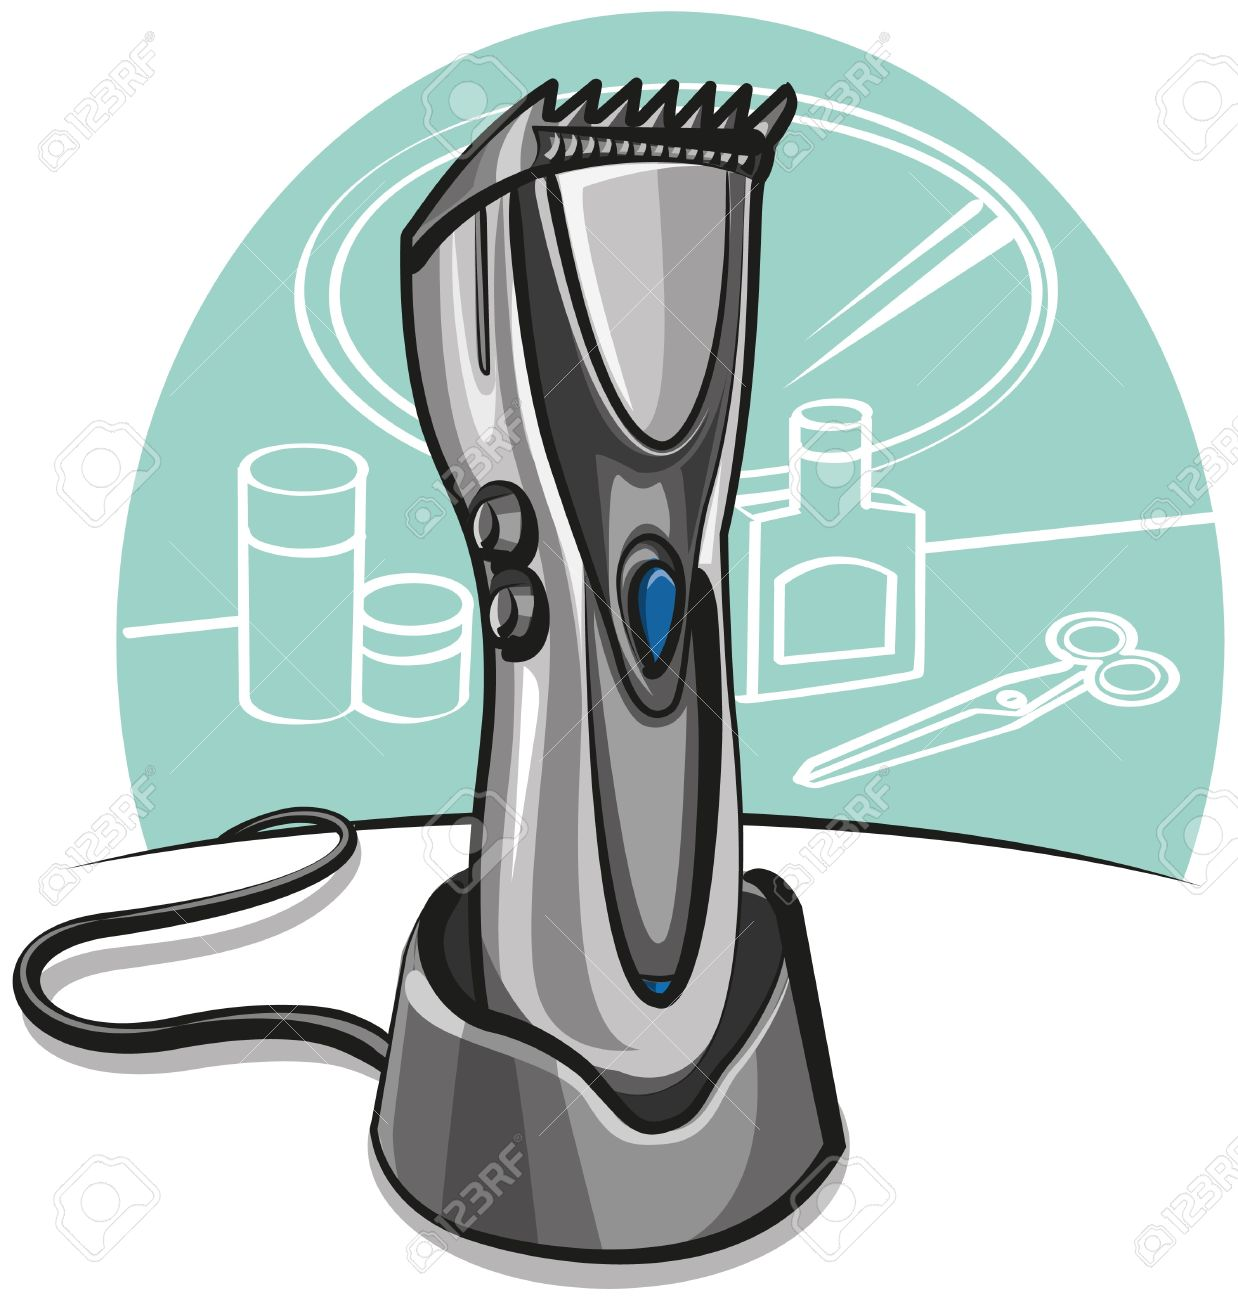 Electric Hair Clipper Royalty Free Cliparts, Vectors, And Stock.